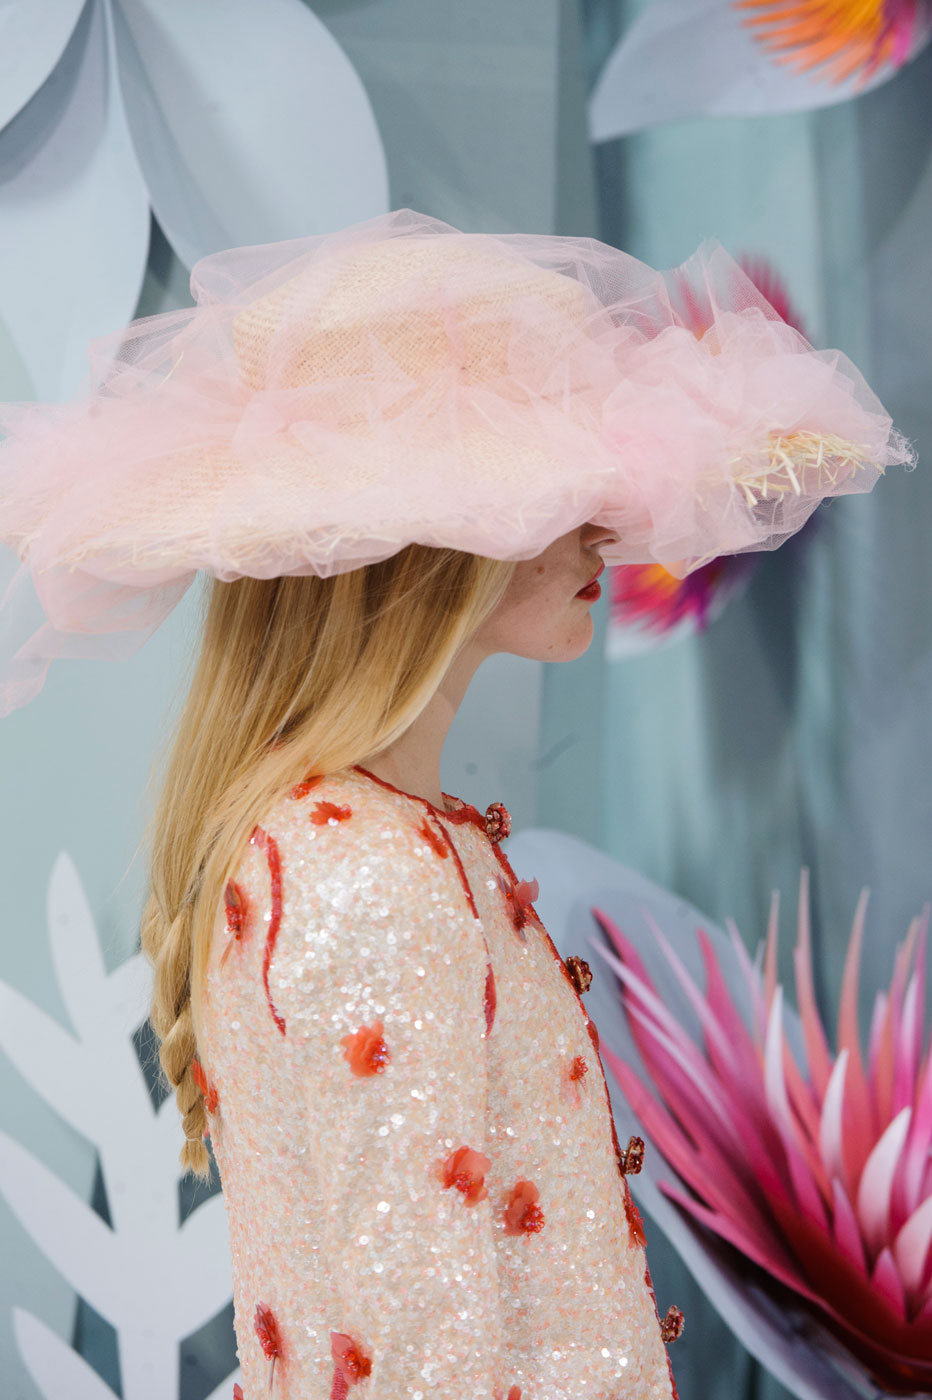 Chanel-fashion-runway-show-close-ups-haute-couture-paris-spring-summer-2015-the-impression-052